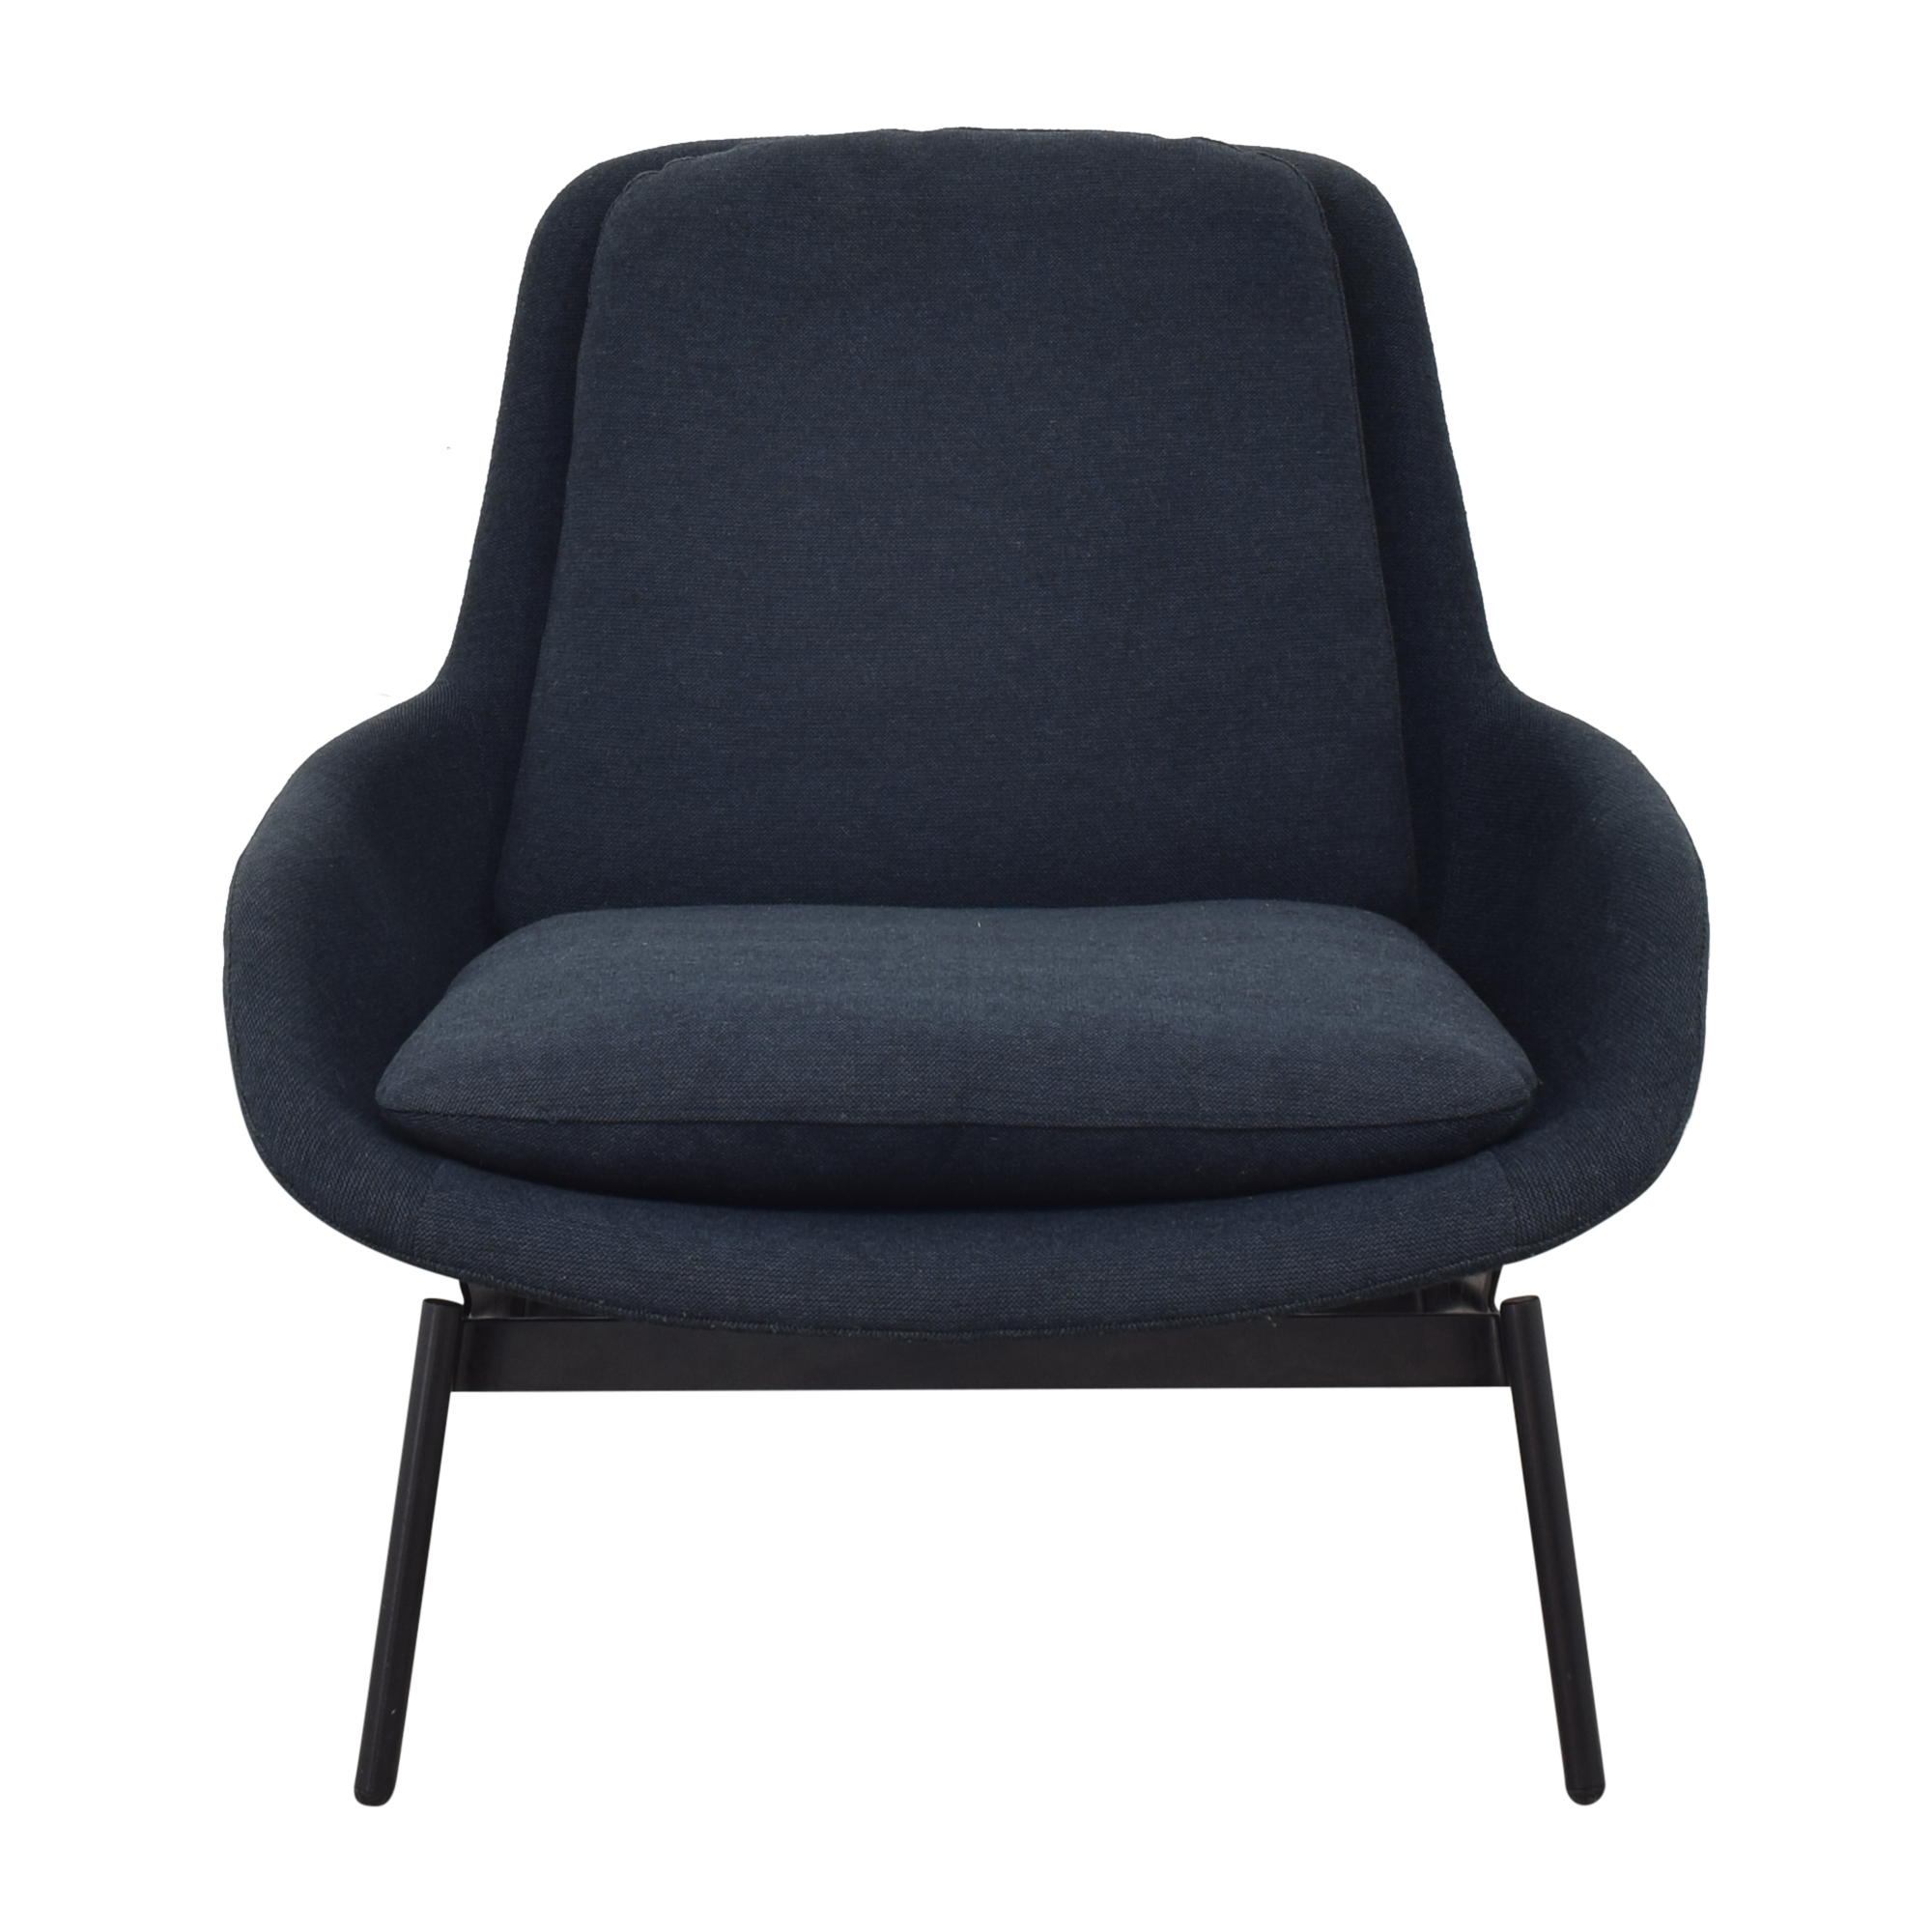 Blu Dot Blu Dot Field Lounge Chair price